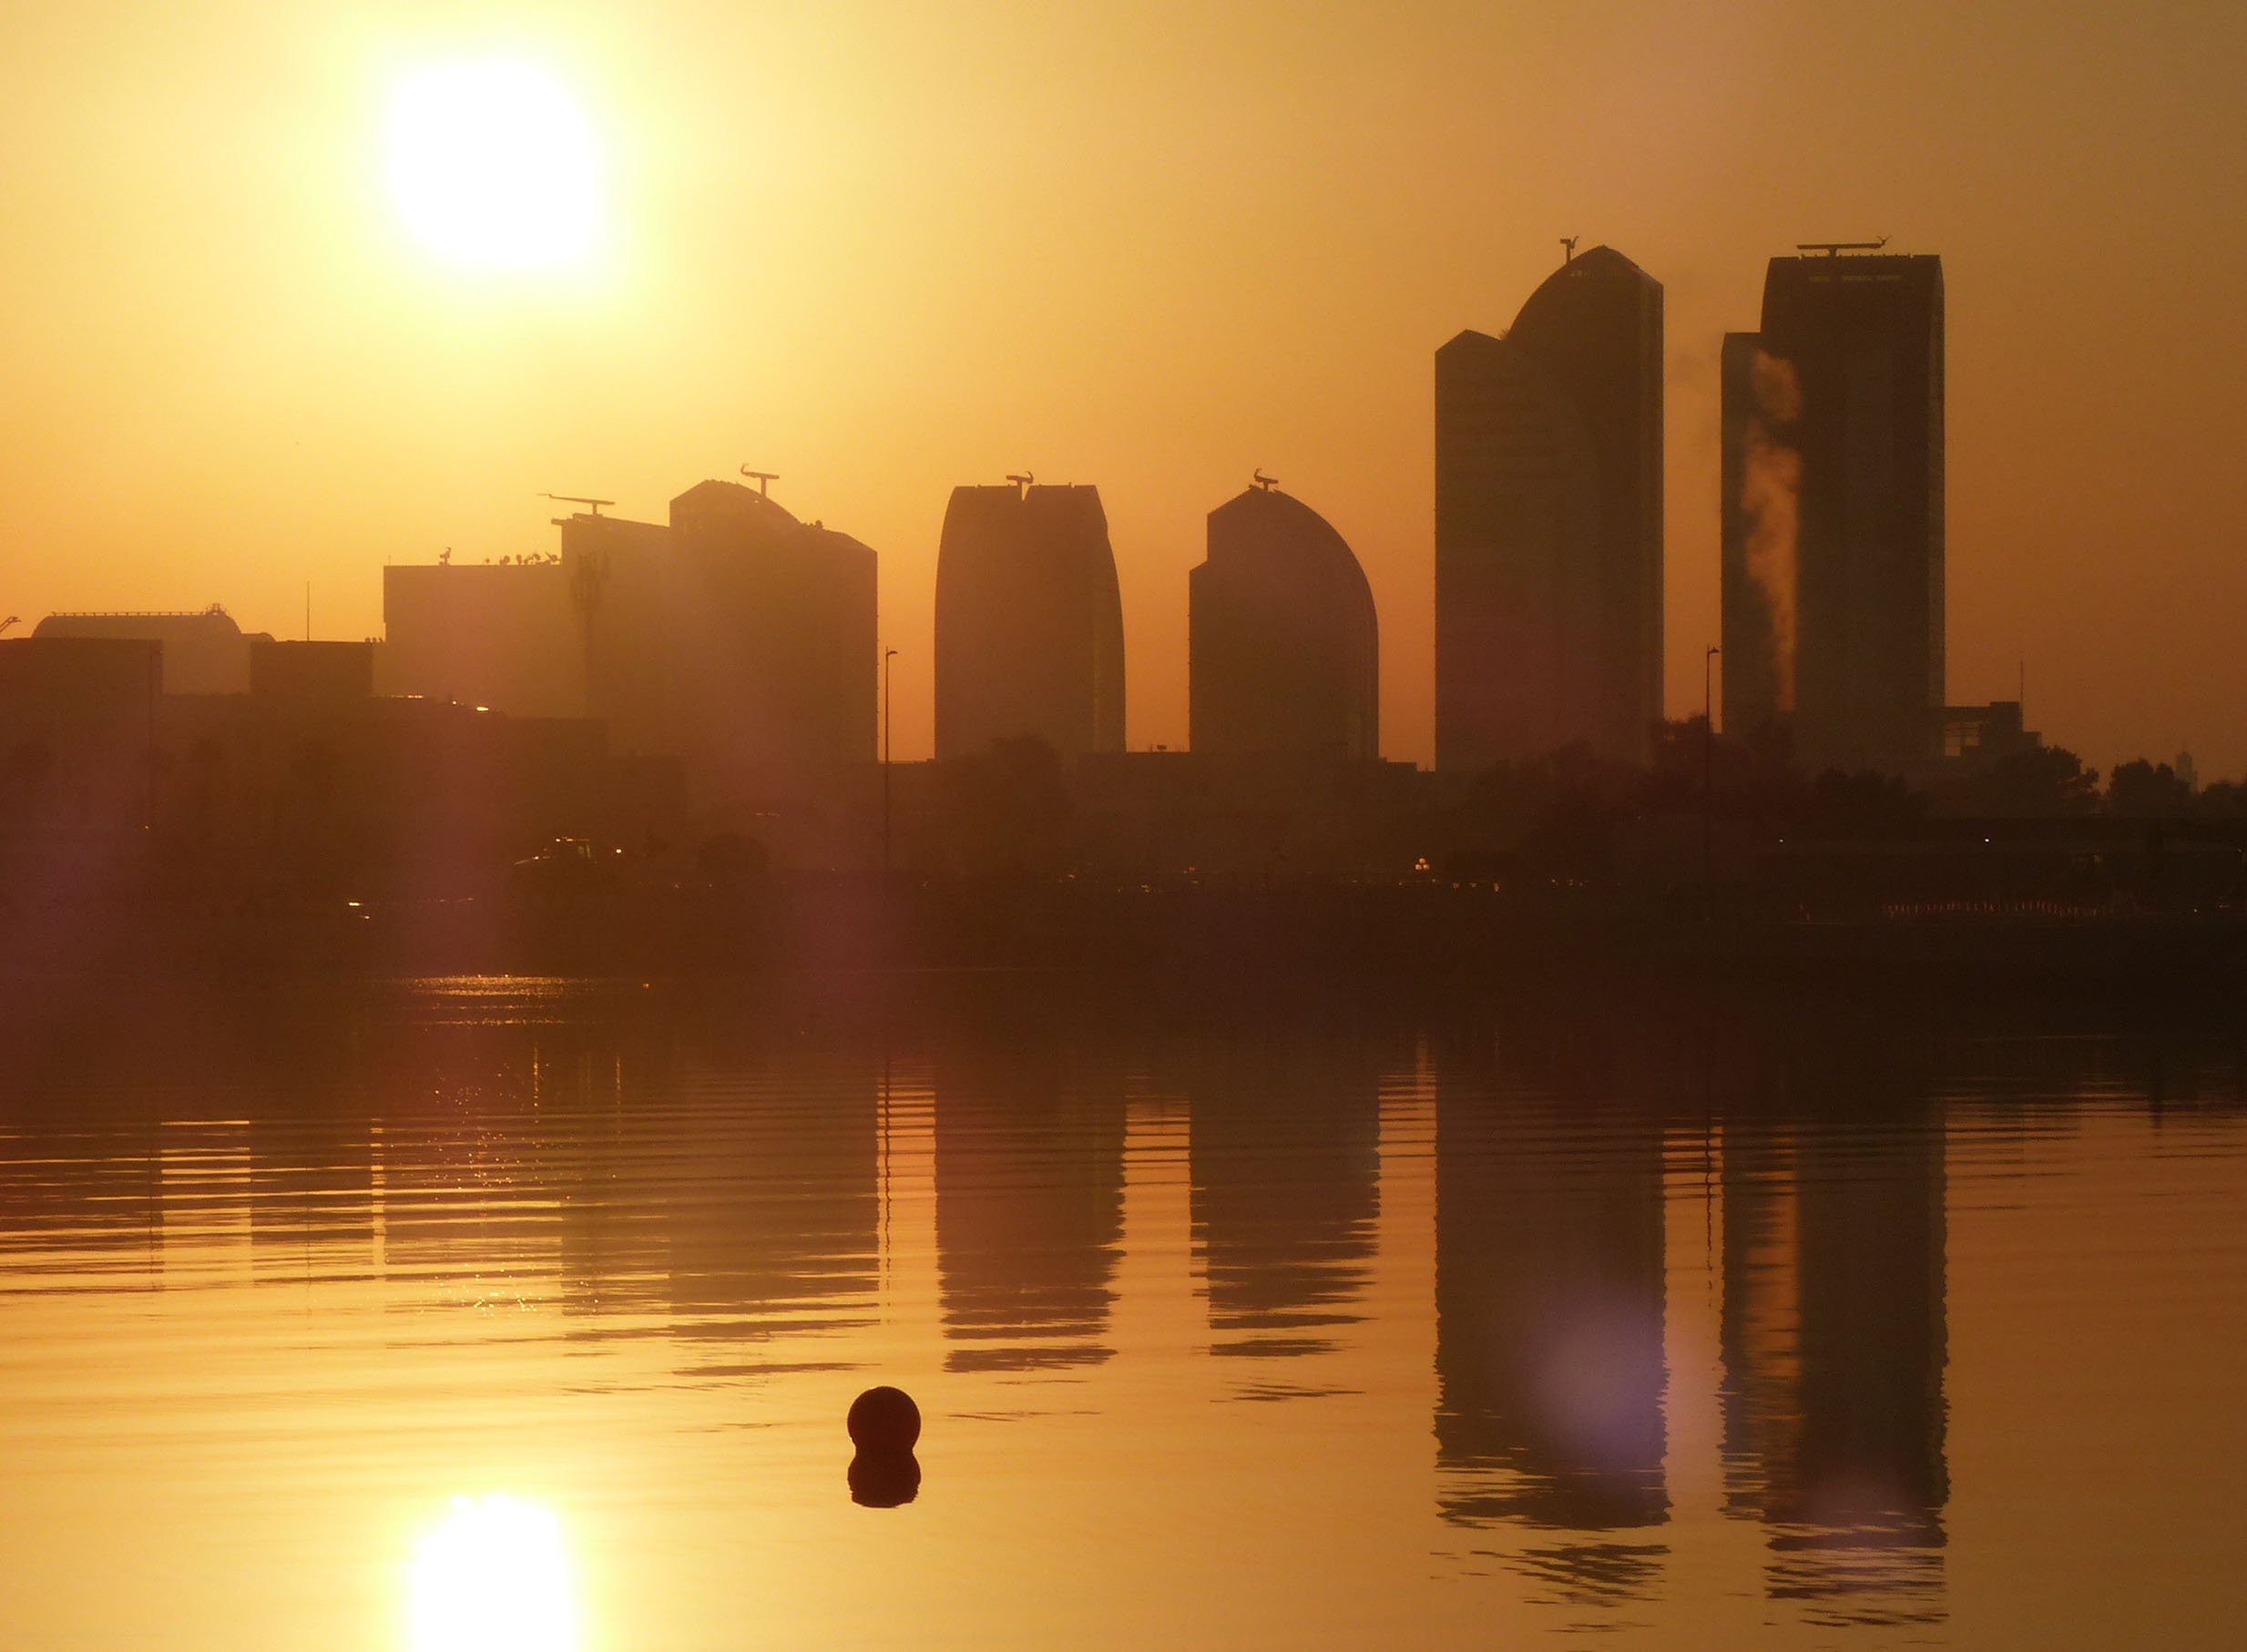 Tall buildings in mist with orange sky, reflected in water